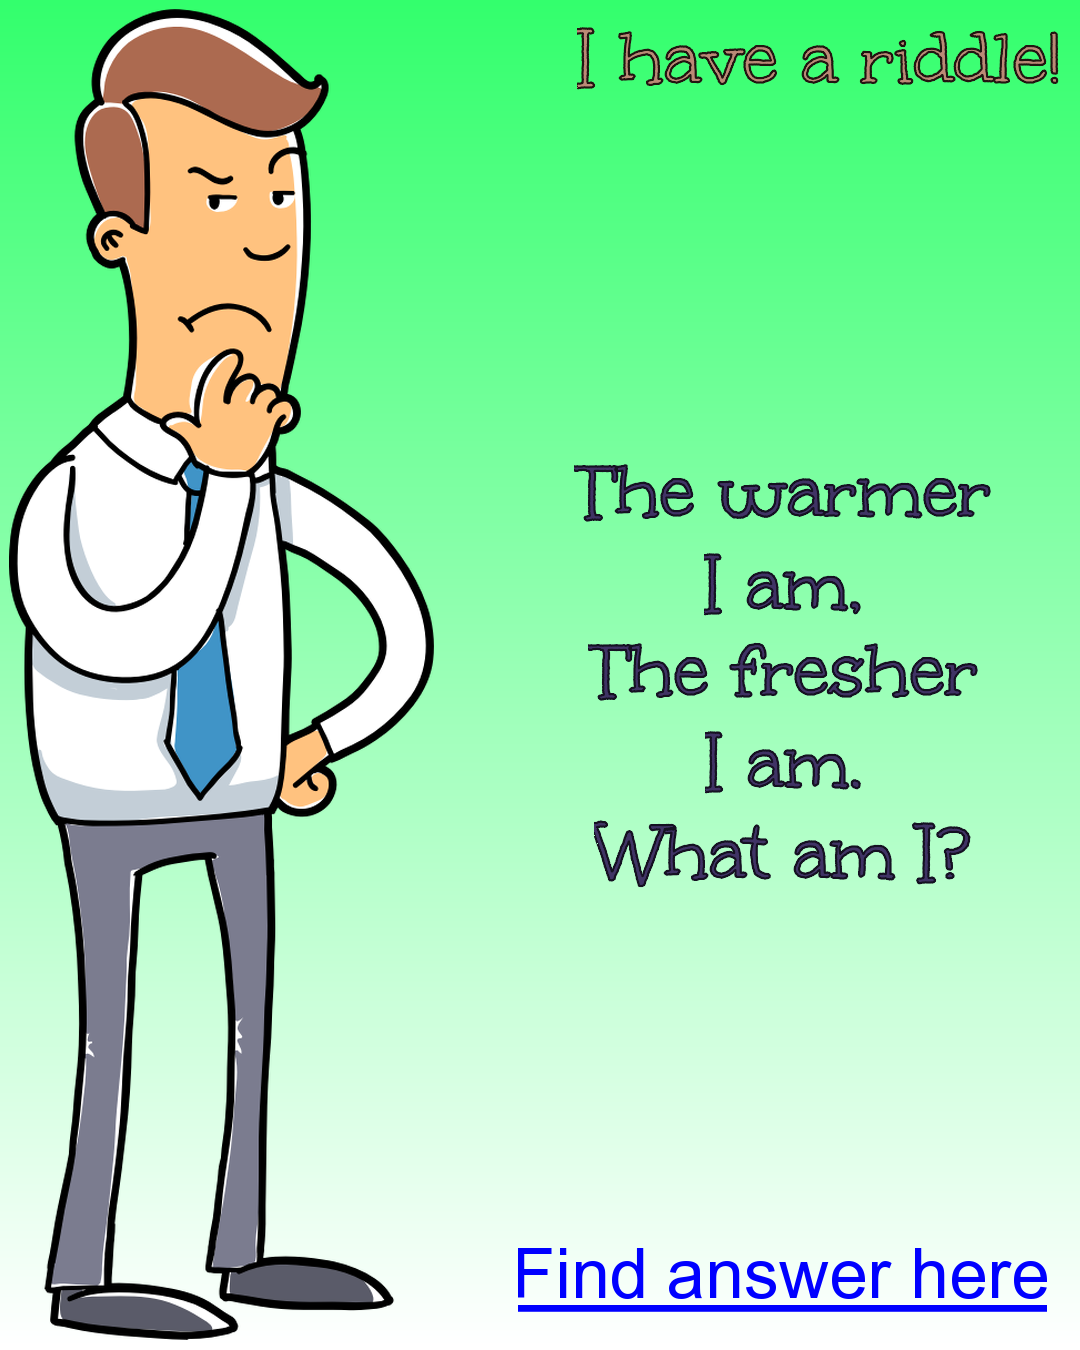 What am I? Fresh and warm Brain teasers for adults